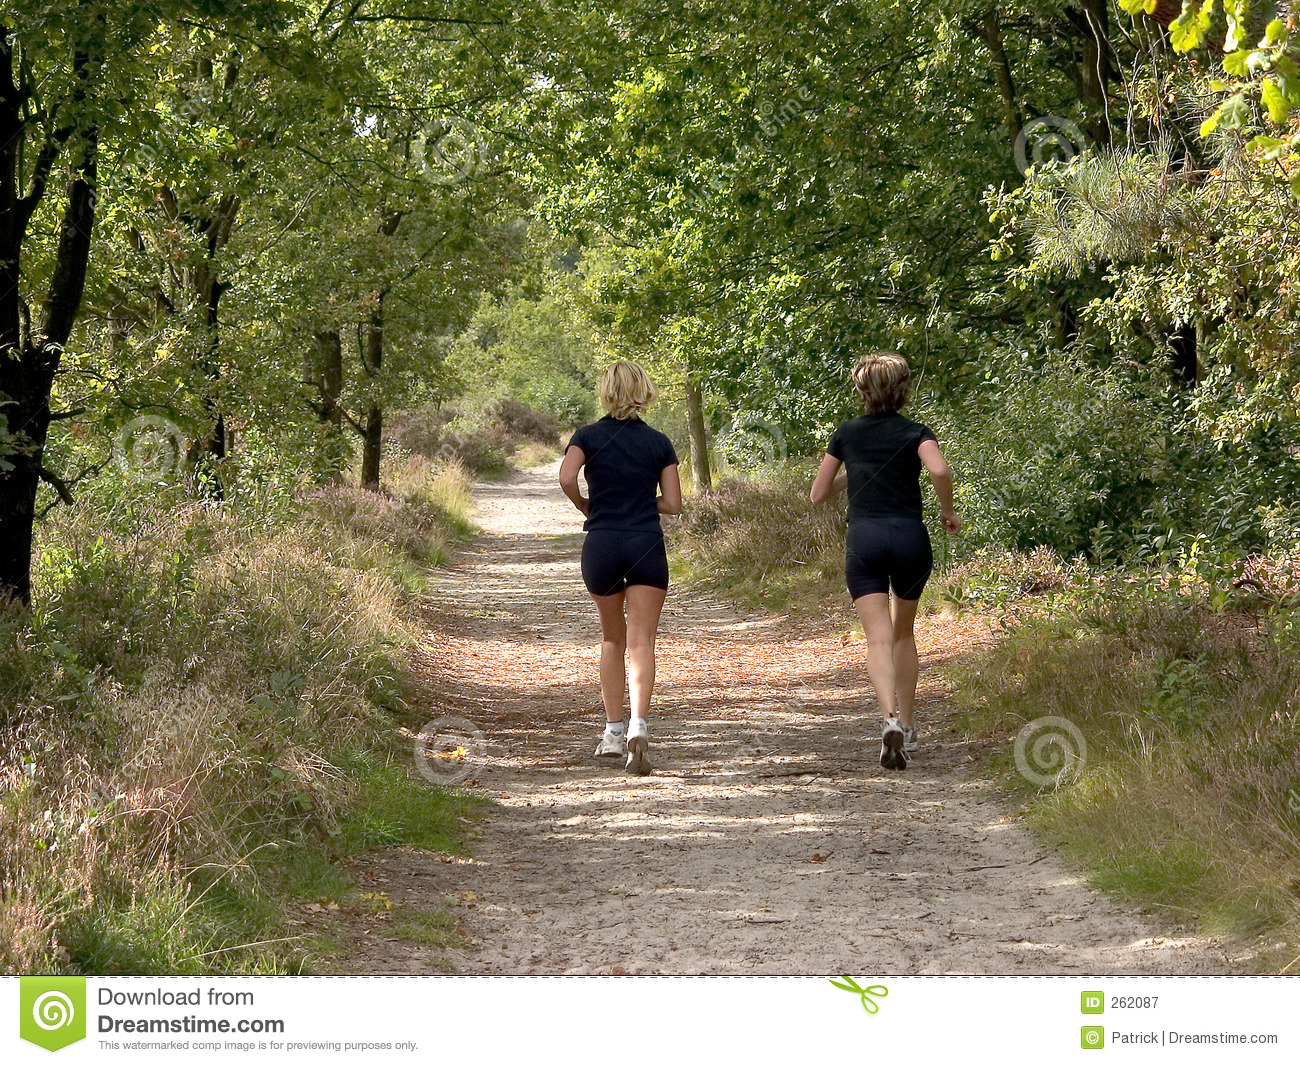 from Trace women jogging in forest